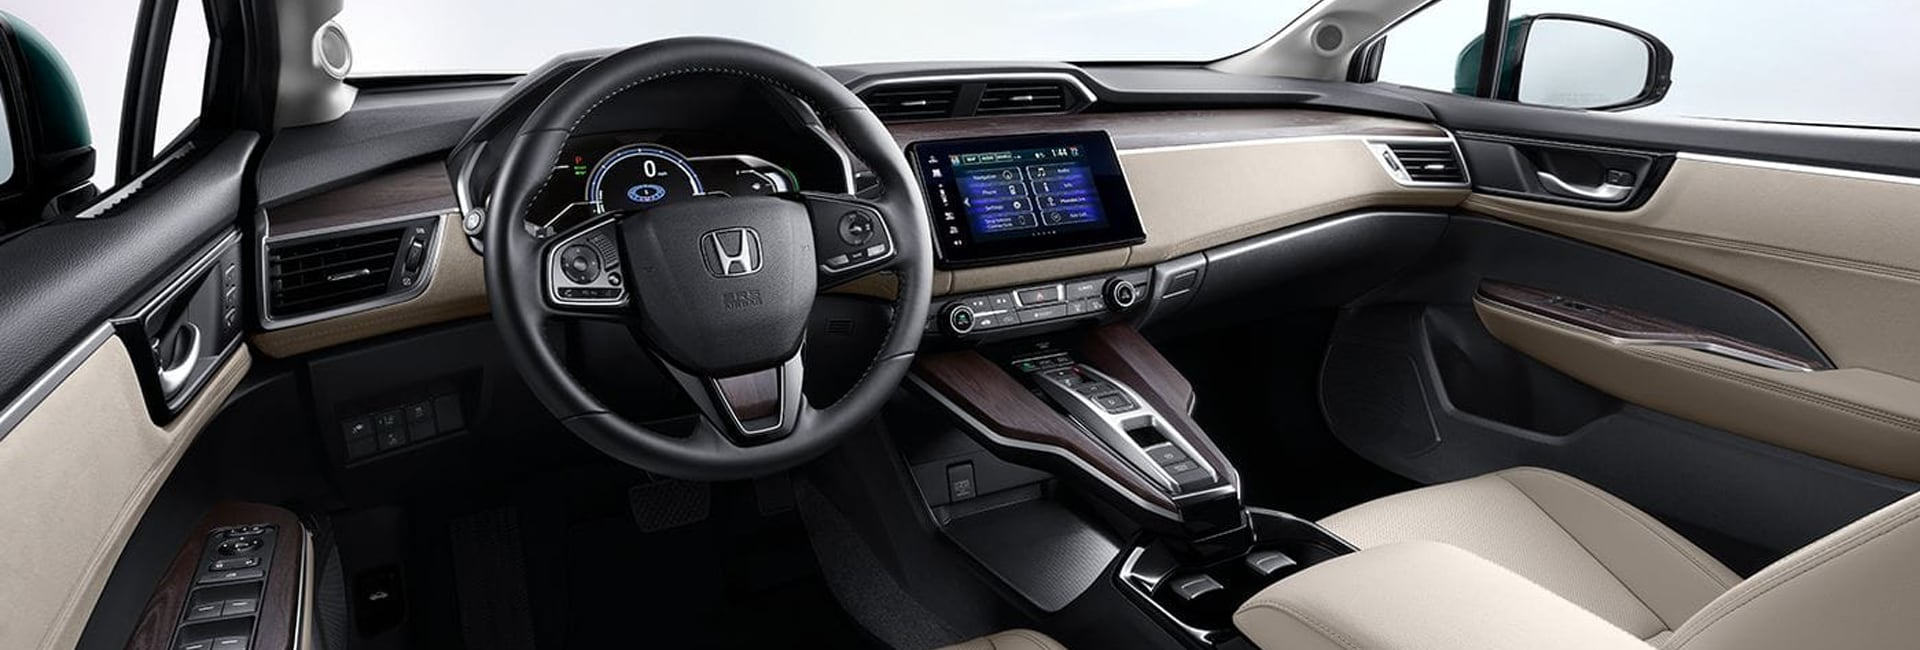 2018 Honda Clarity Plug-In Hybrid Interior Features